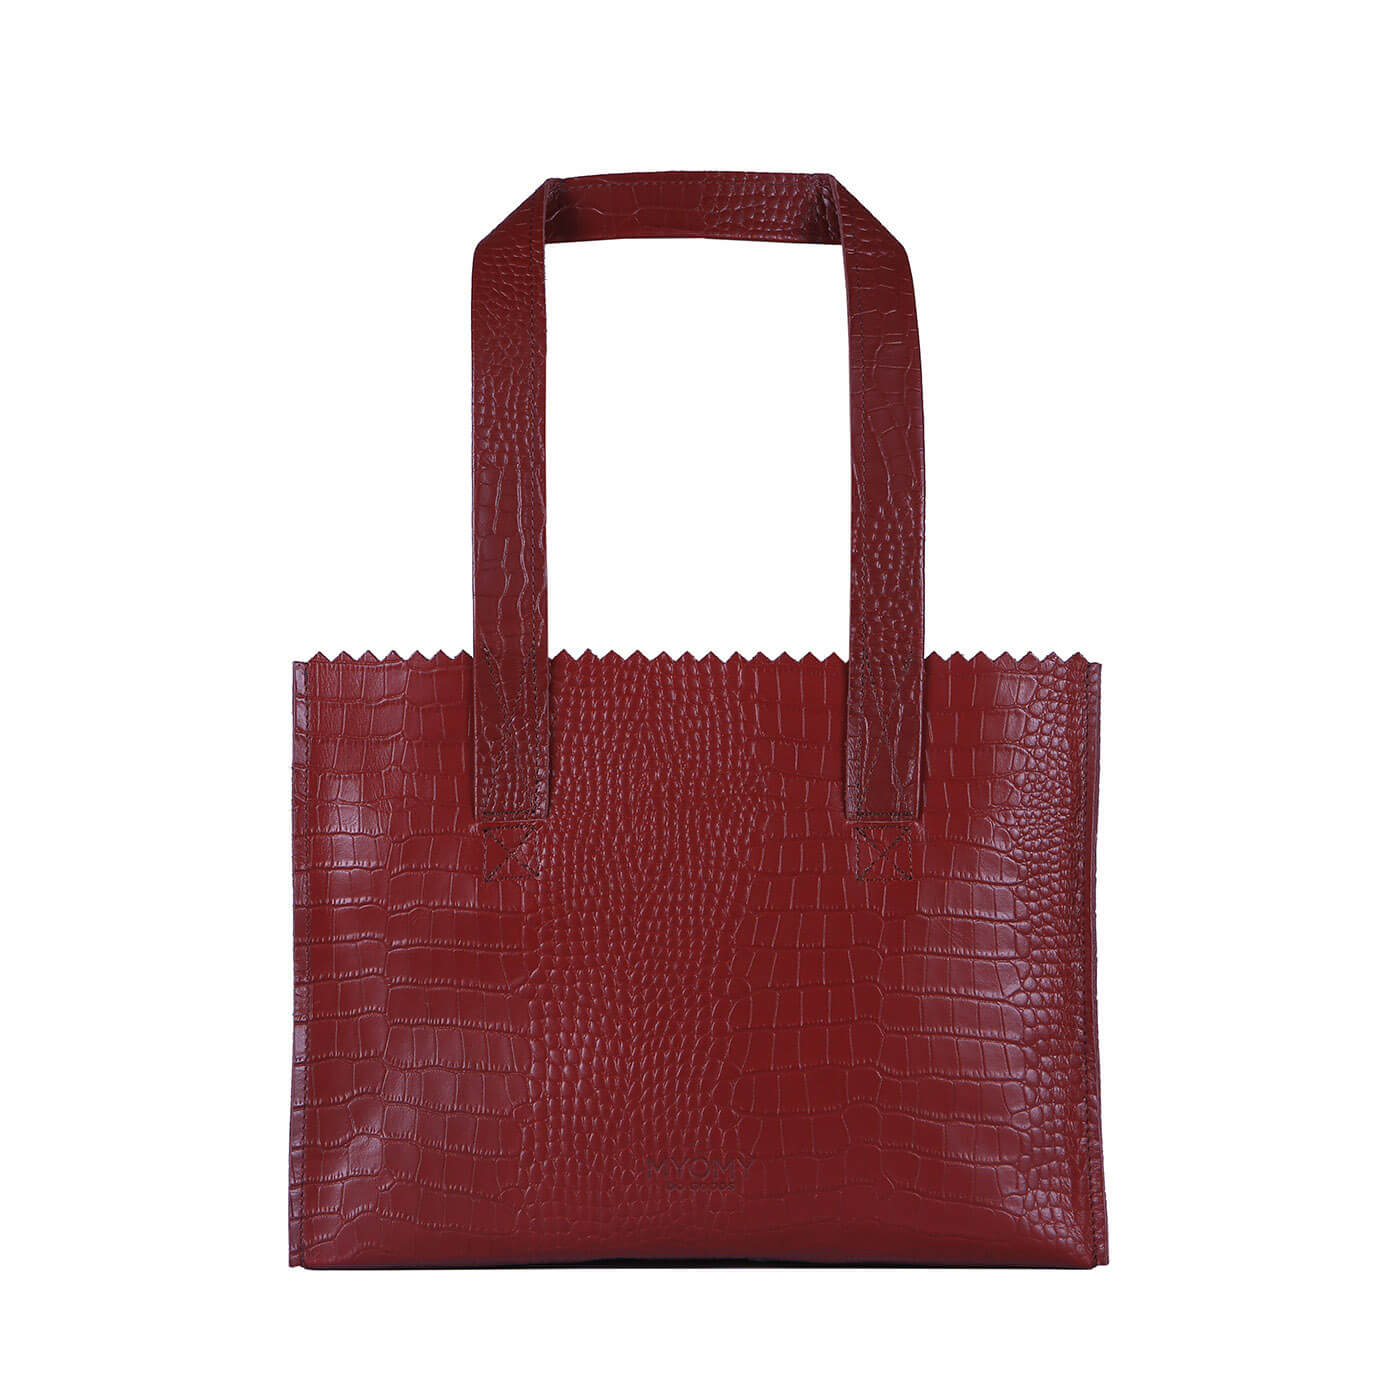 [PRE-ORDER] MY PAPER BAG Handbag – croco burgundy